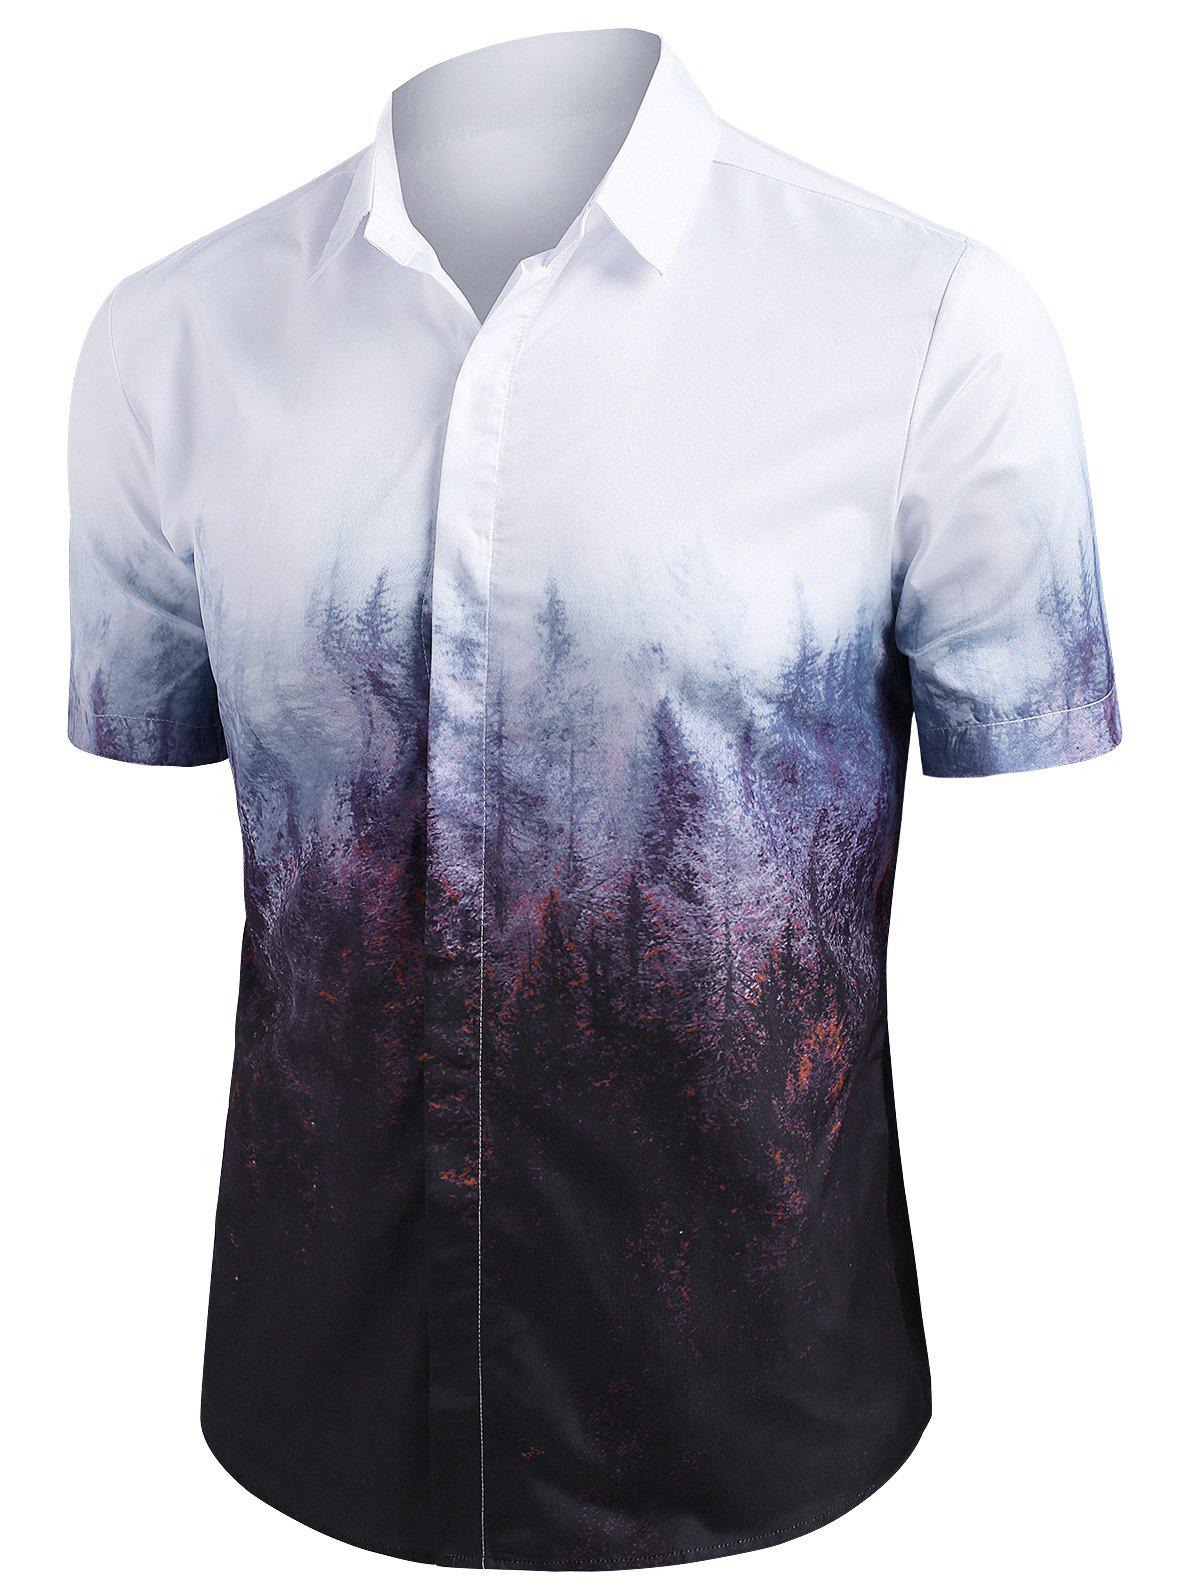 Best Misty Forest Print Button Up Short Sleeve Shirt